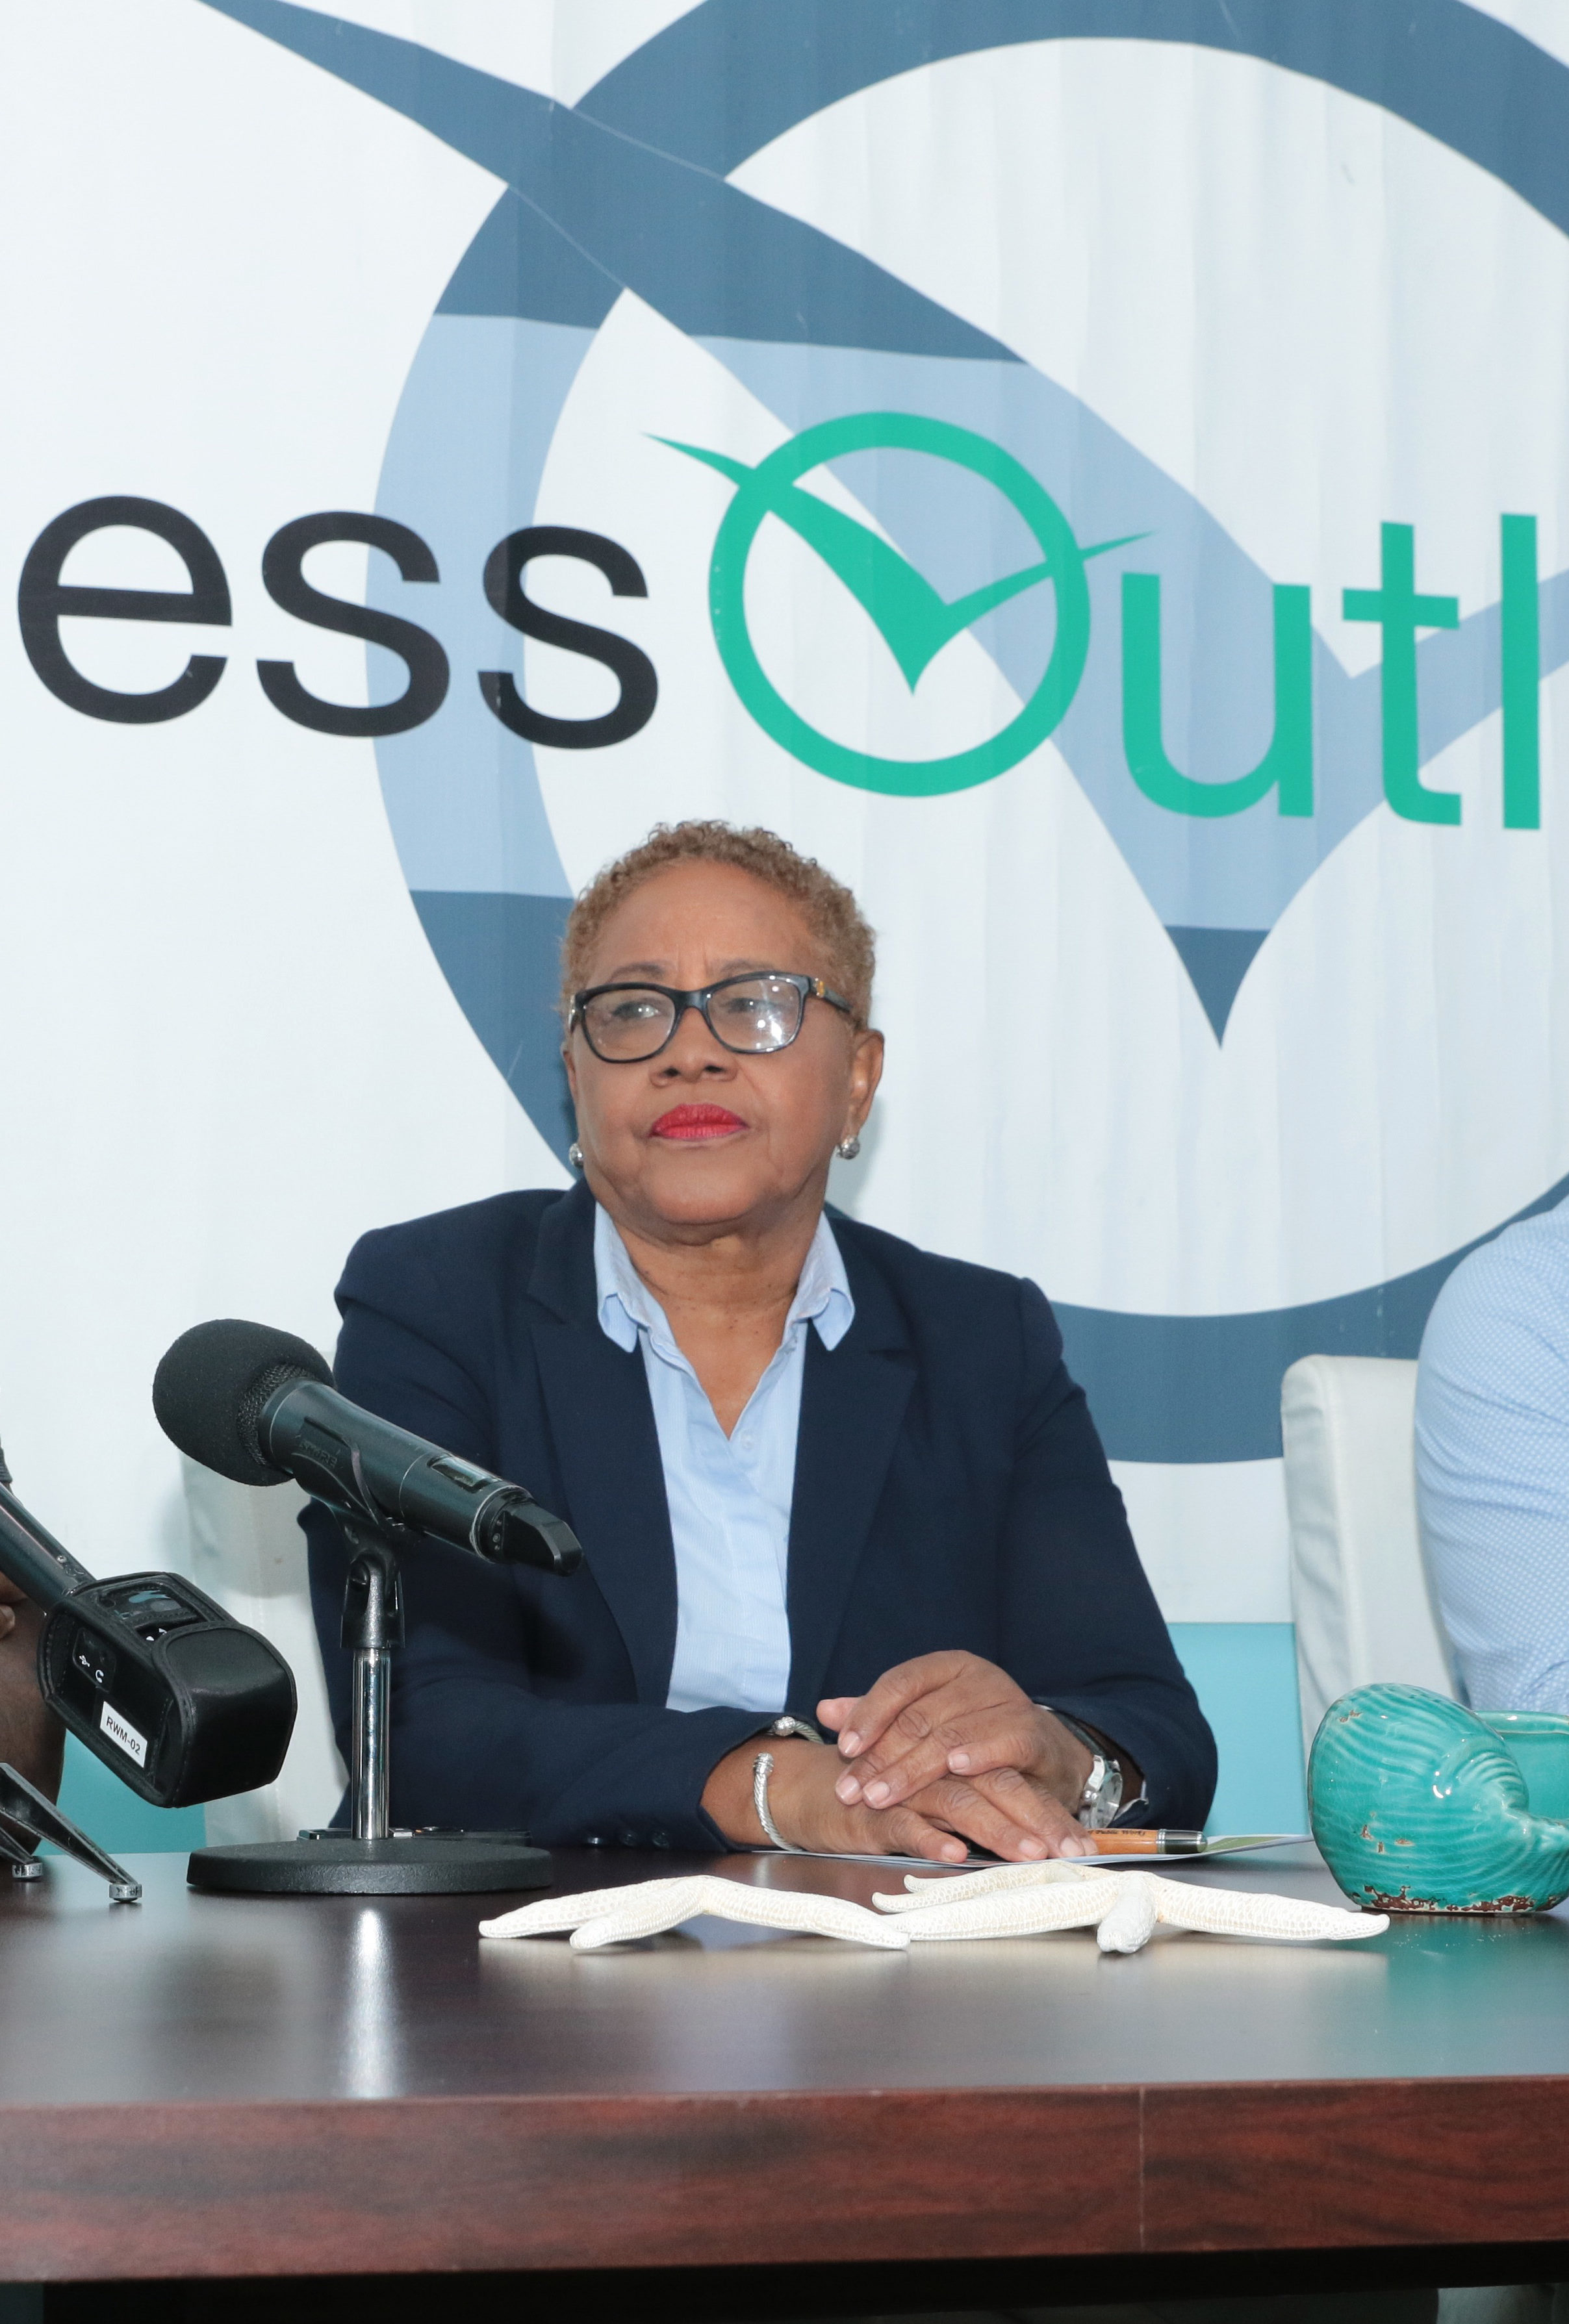 7th ANNUAL ELEUTHERA BUSINESS OUTLOOK SET FOR MAY 17